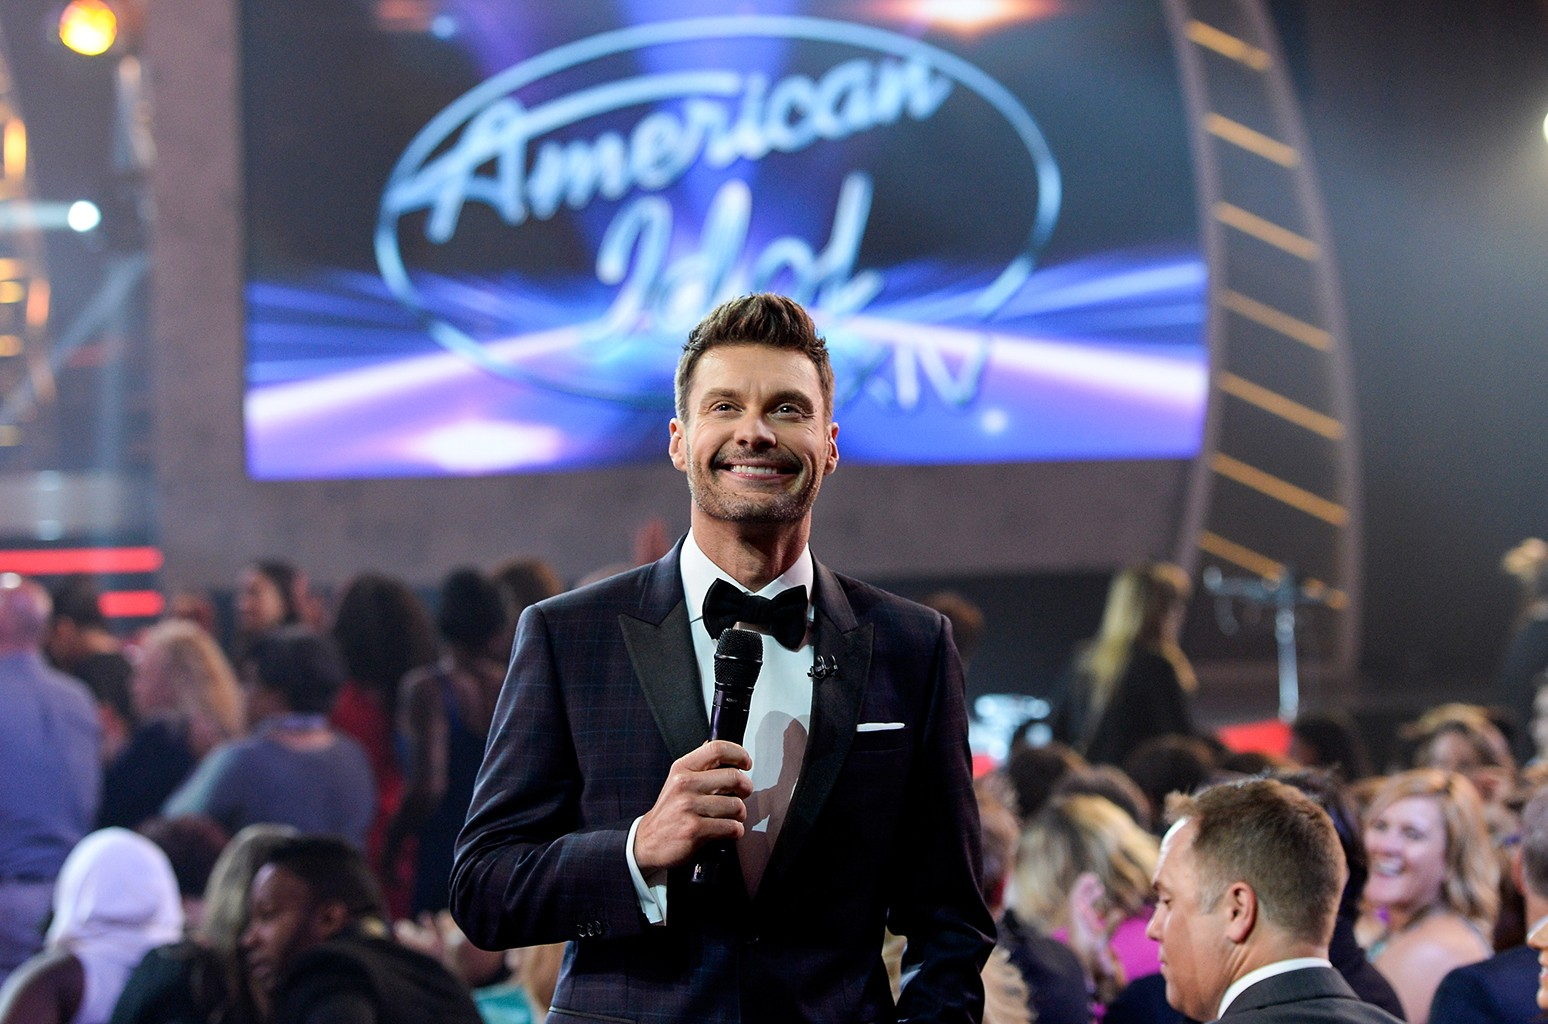 Host Ryan Seacrest speaks during American Idol XIV Grand Finale at Dolby Theatre on May 13, 2015 in Hollywood, Calif.